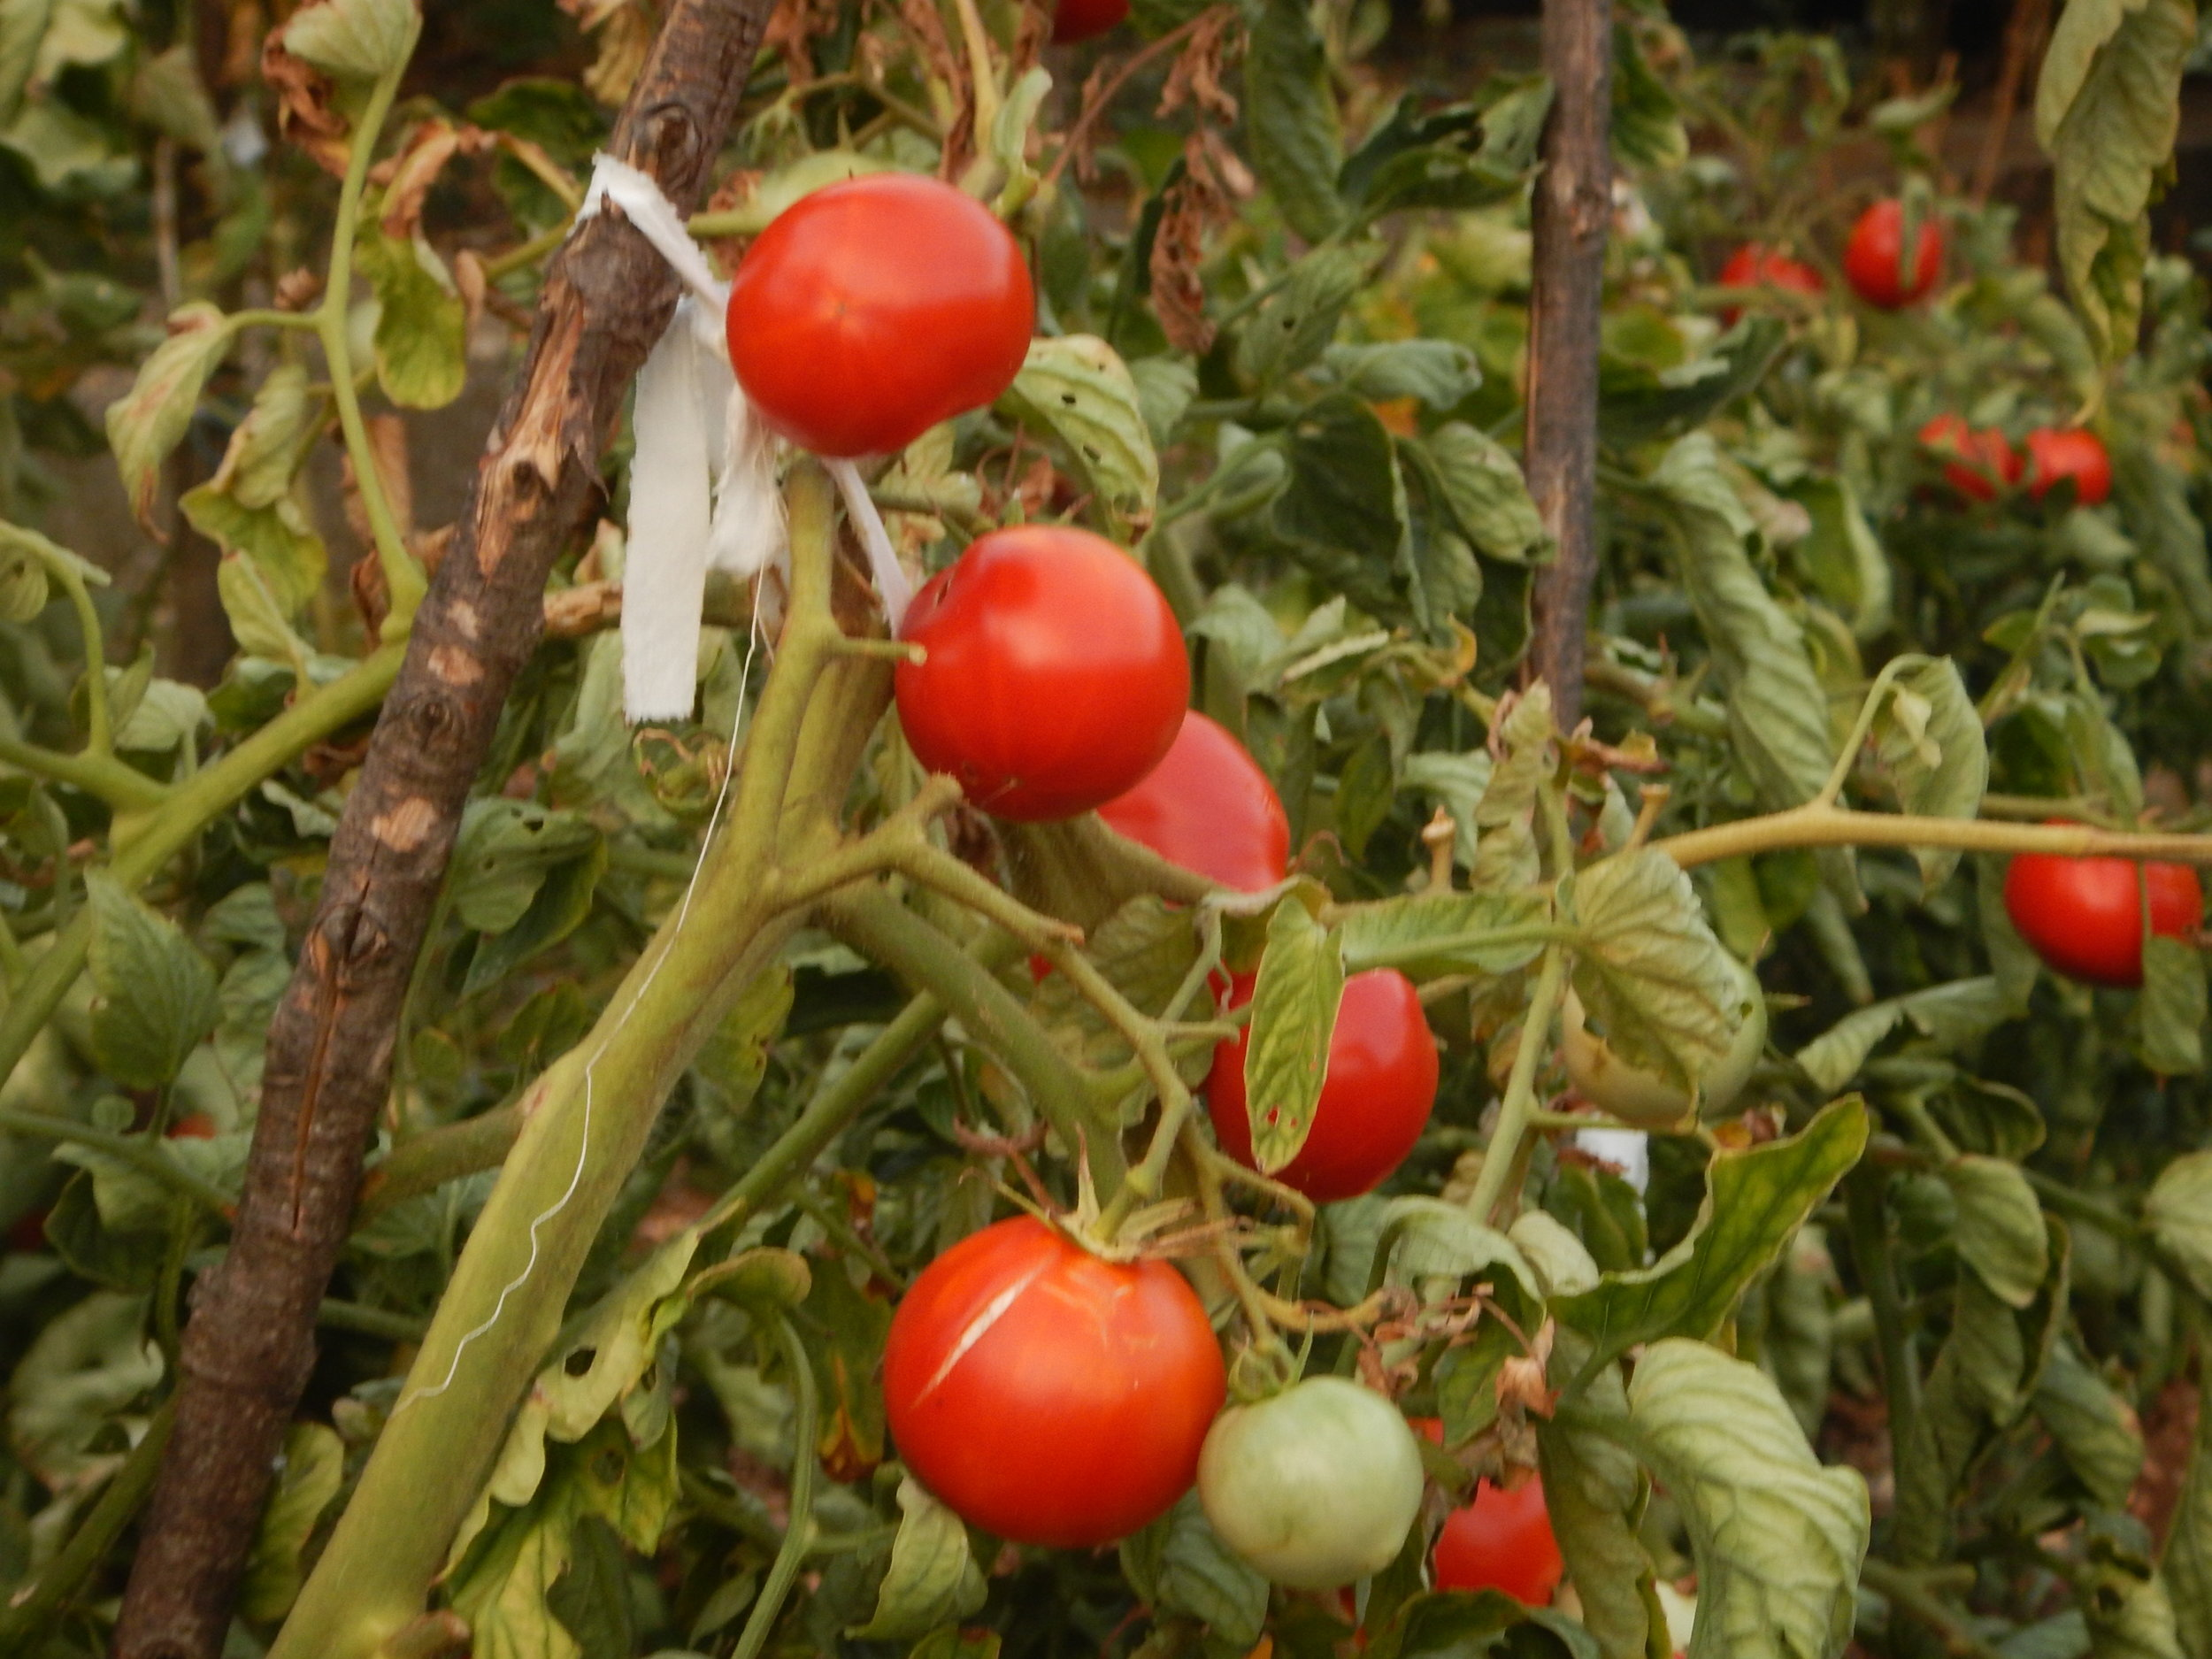 Tomatoes just bursting with flavour and goodness